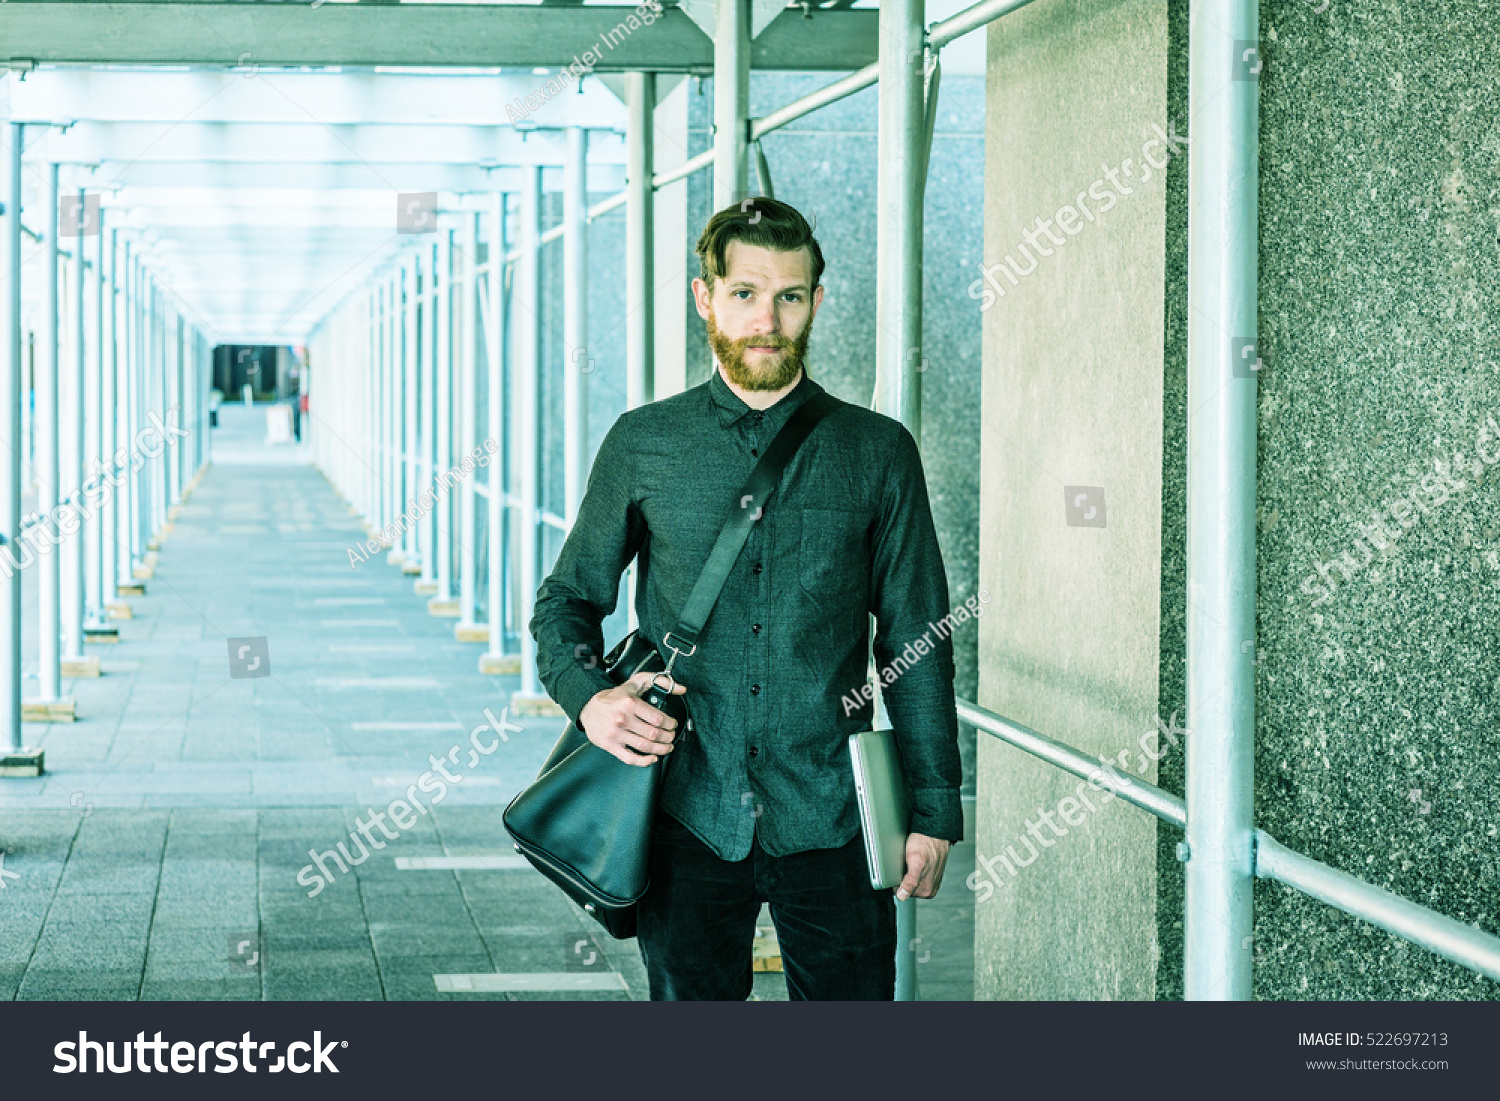 american business man beard mustache travels stock photo 522697213 shutterstock. Black Bedroom Furniture Sets. Home Design Ideas